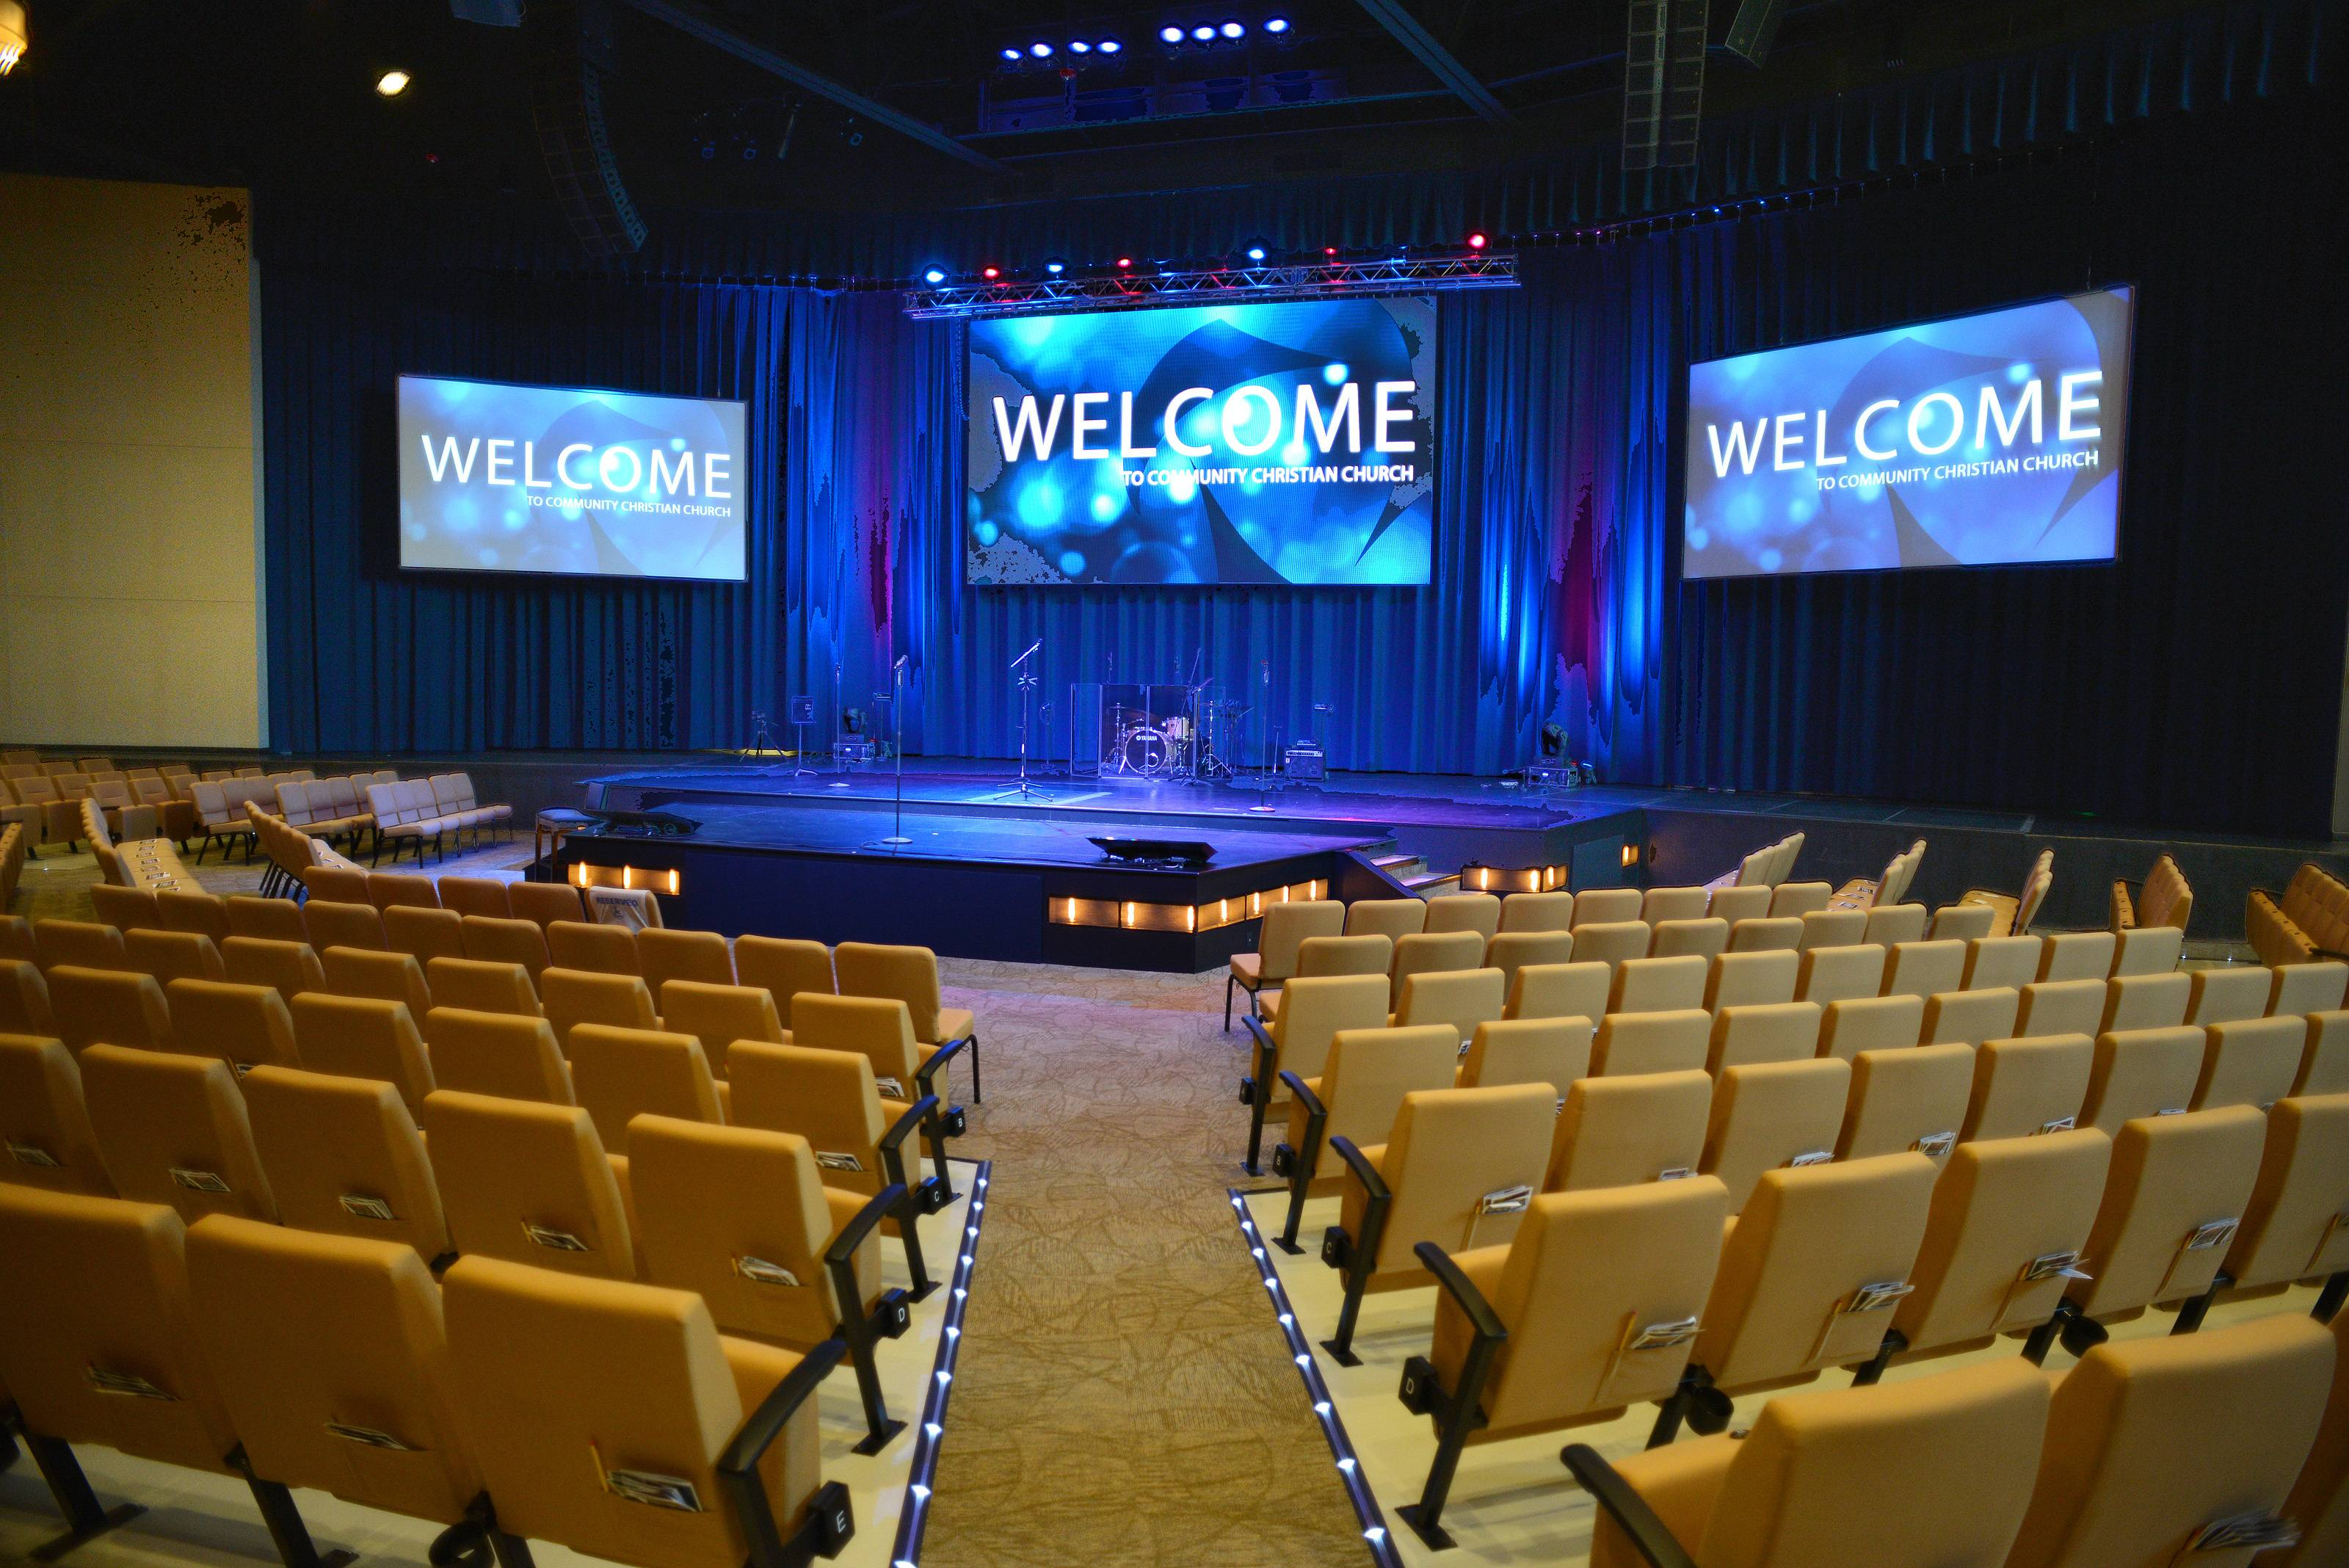 The new auditorium at Yellow Box Community Christian Church in Naperville can seat up to 1,200 people and will allow the church to expand its attendance during weekend services. The space also is available to host conventions and community gatherings.